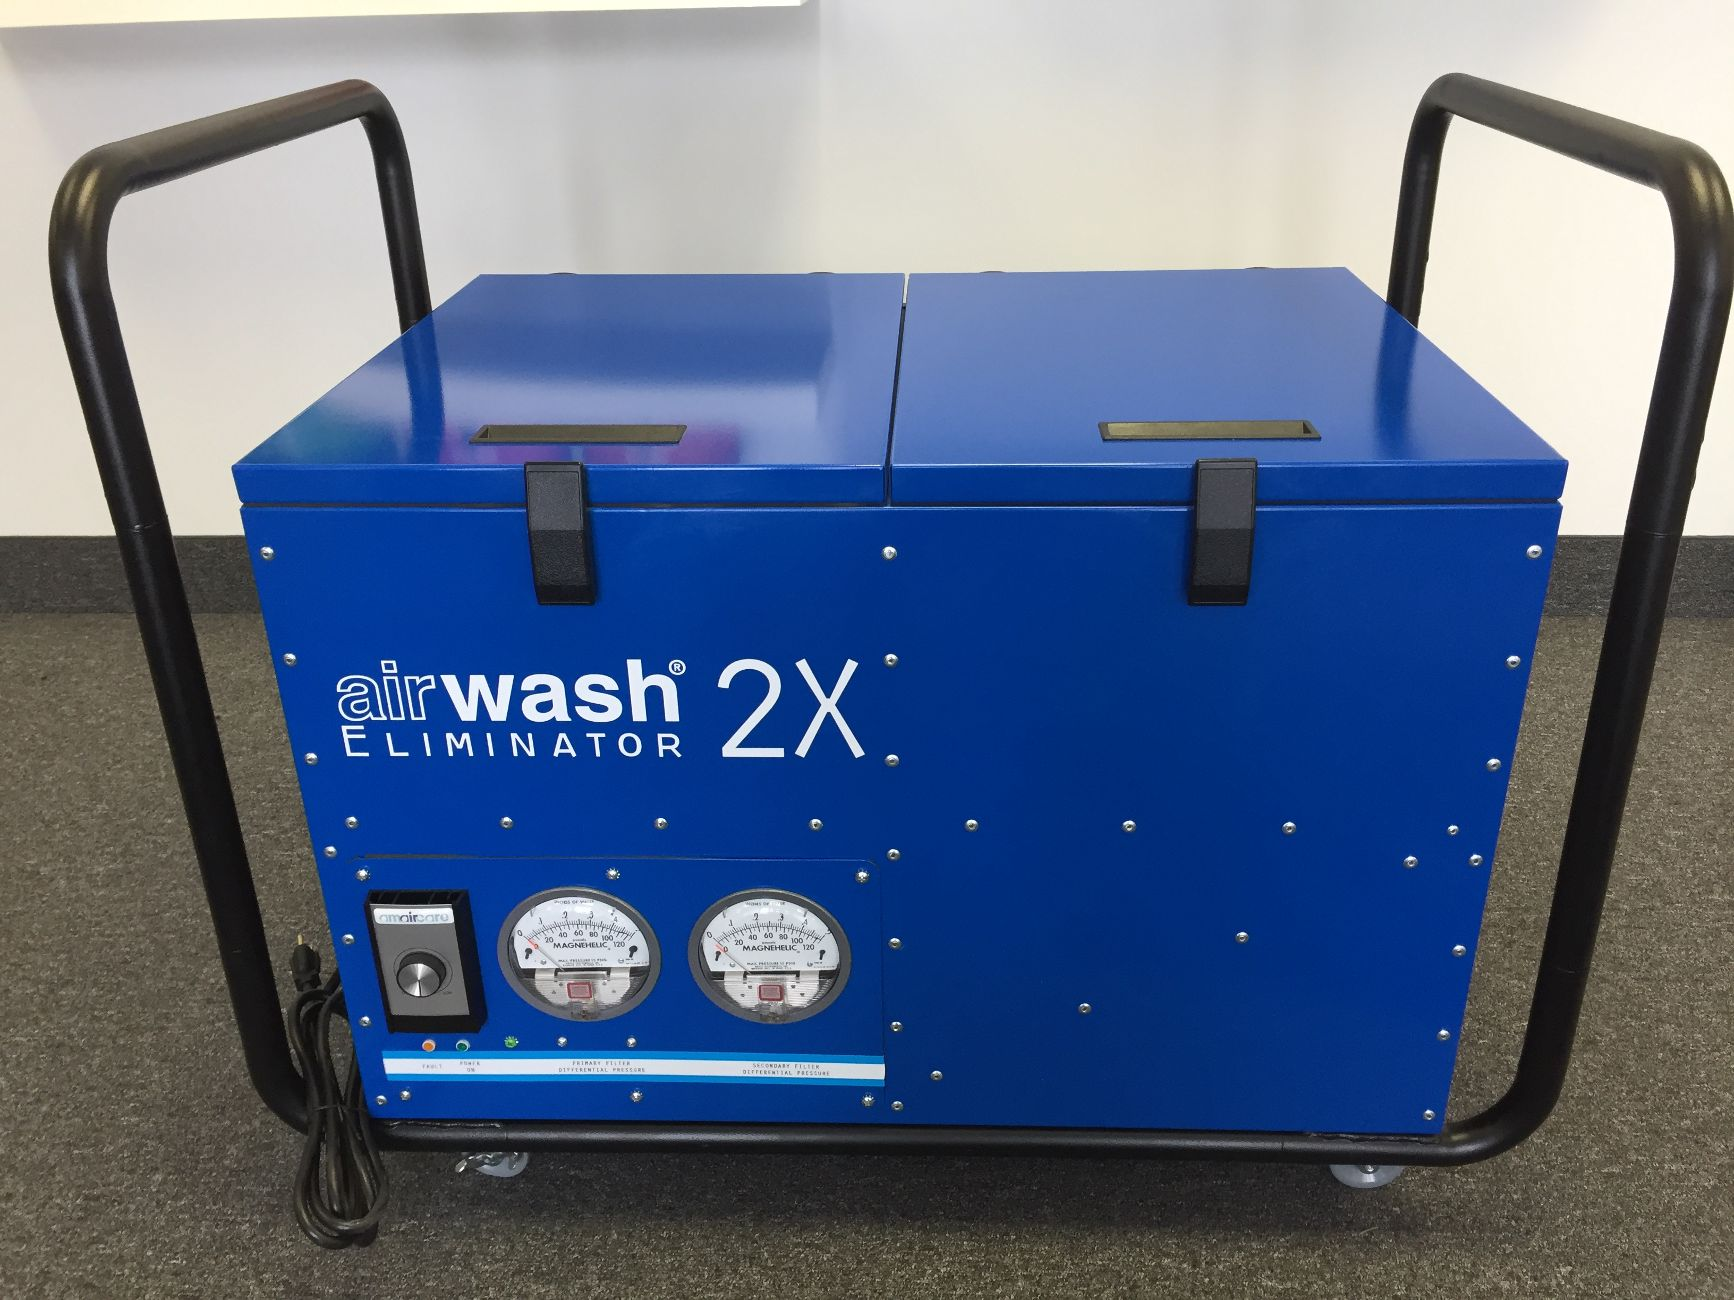 Portable Air Cleaning System : Amaircare airwash eliminator portable air cleaning system